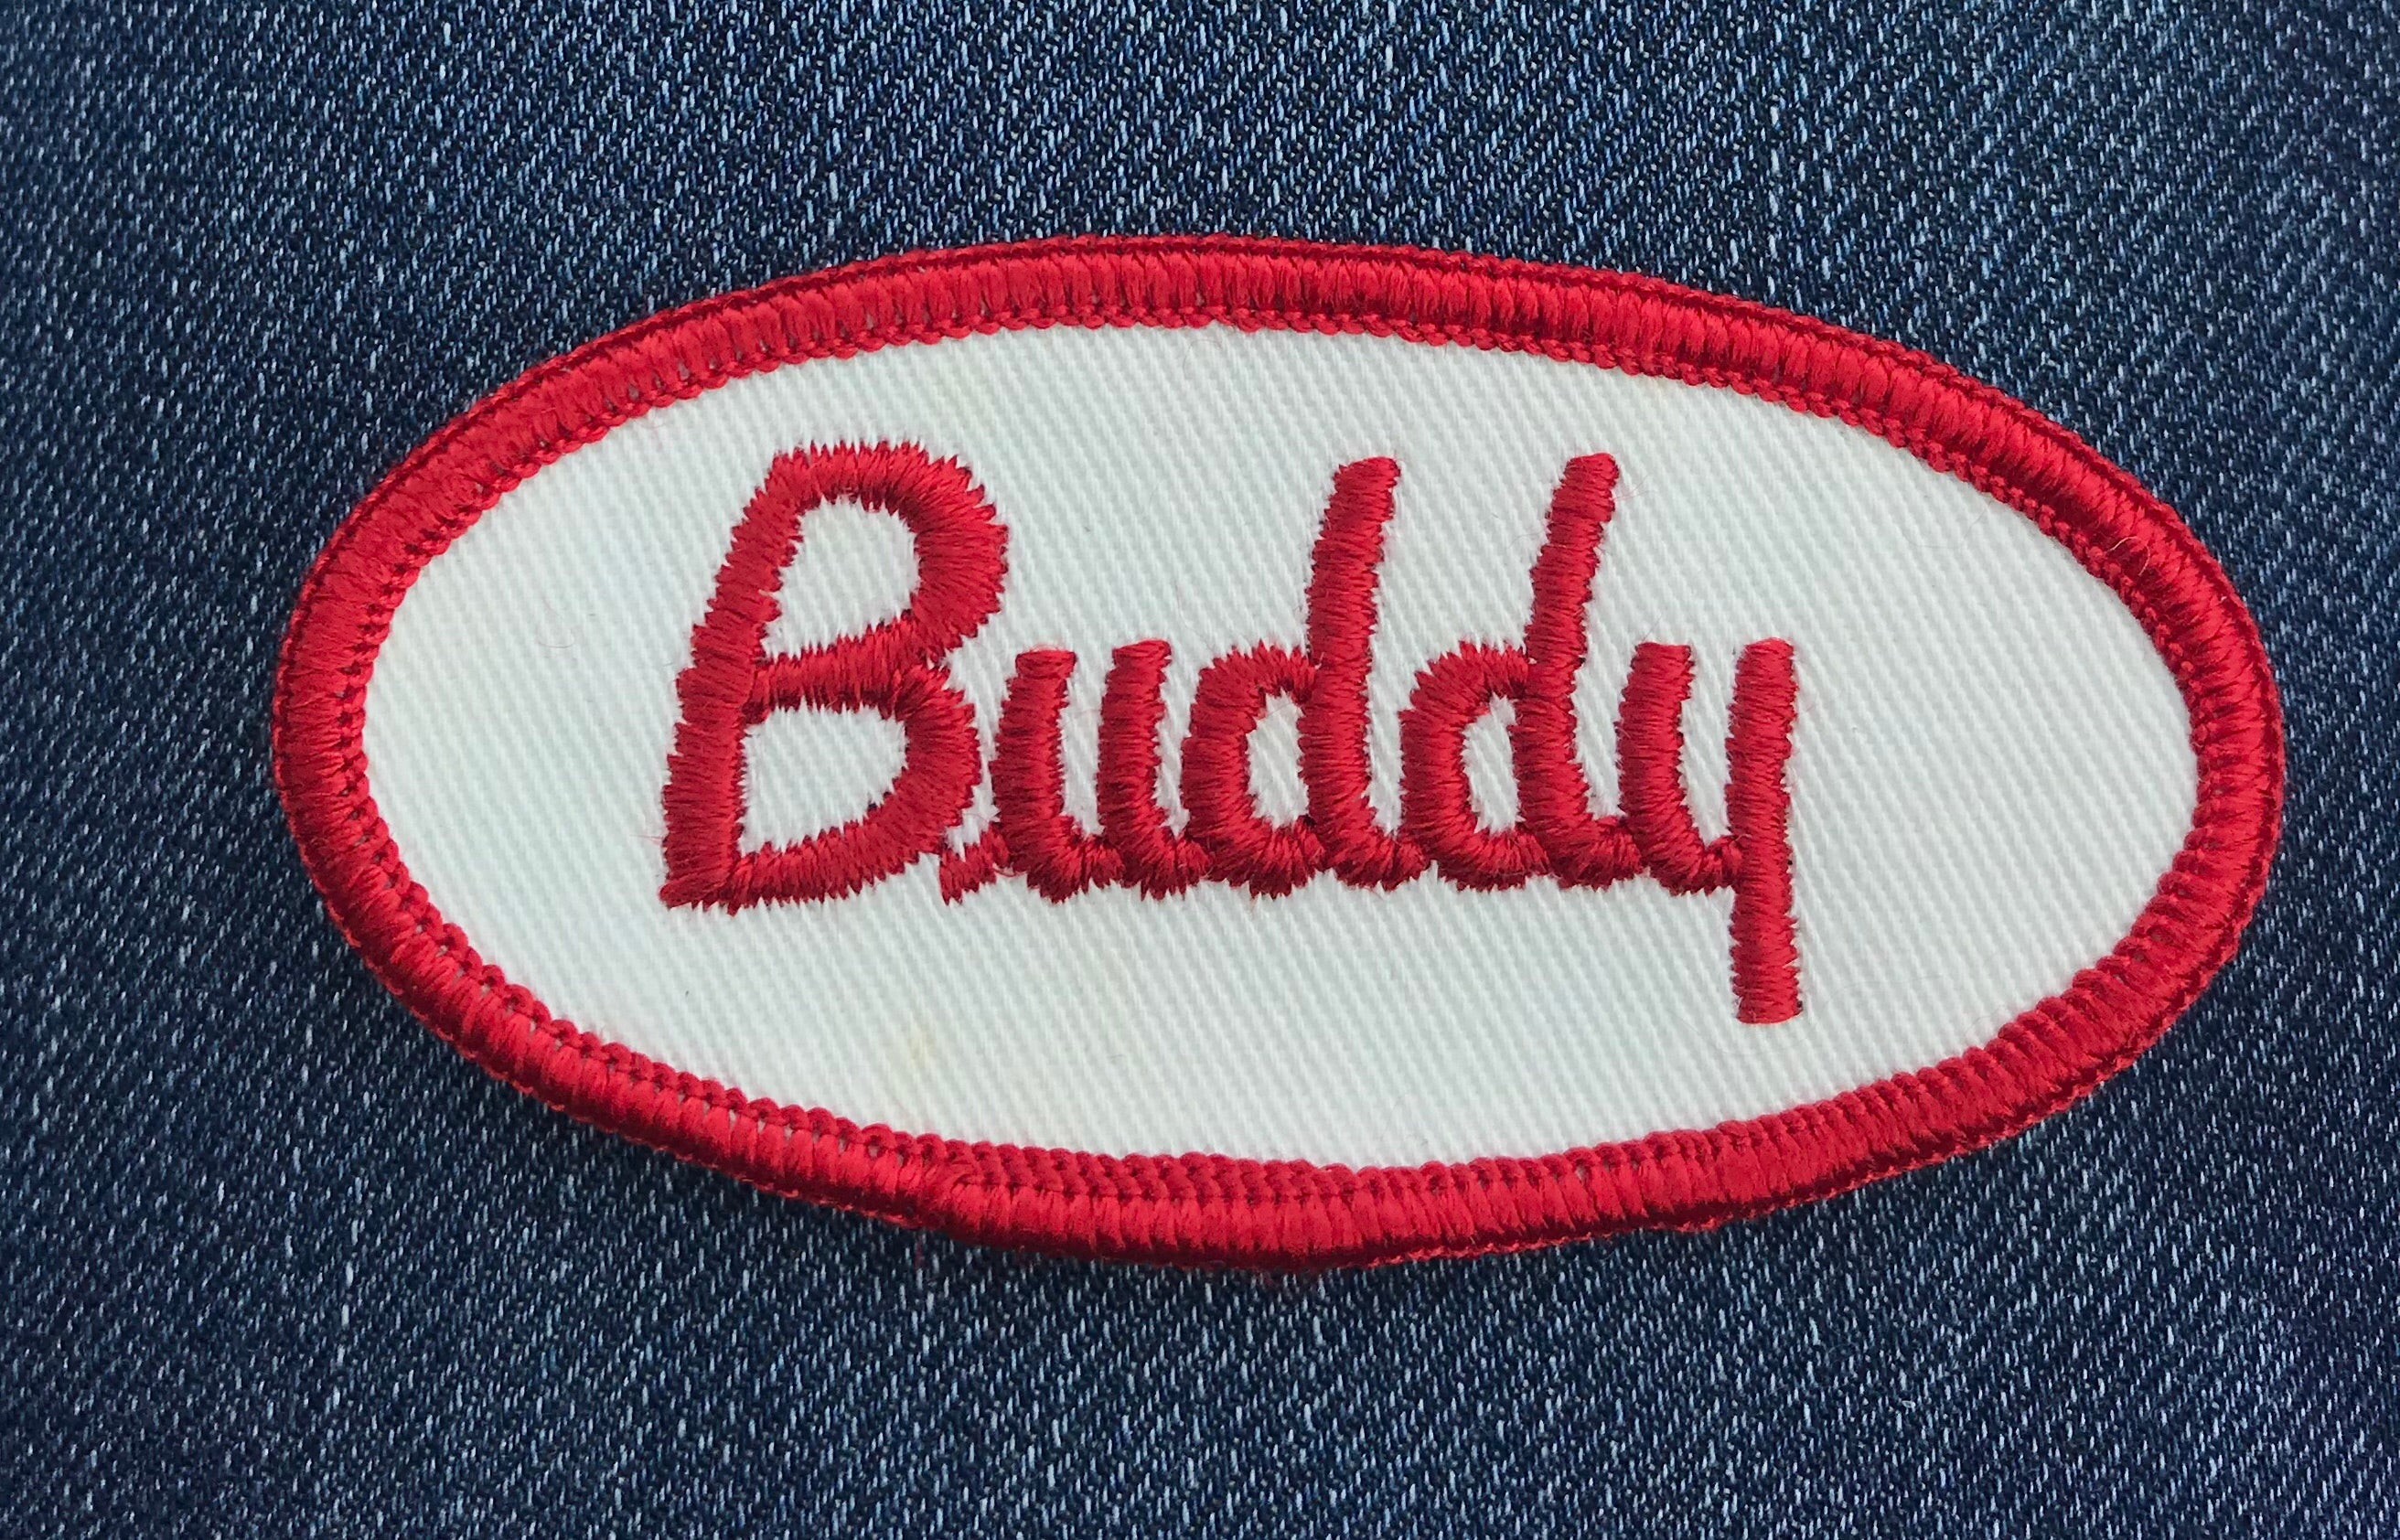 Vintage Retro Mechanic Name Patches Pin Up Rockabilly - Bohemian Moon Boutique